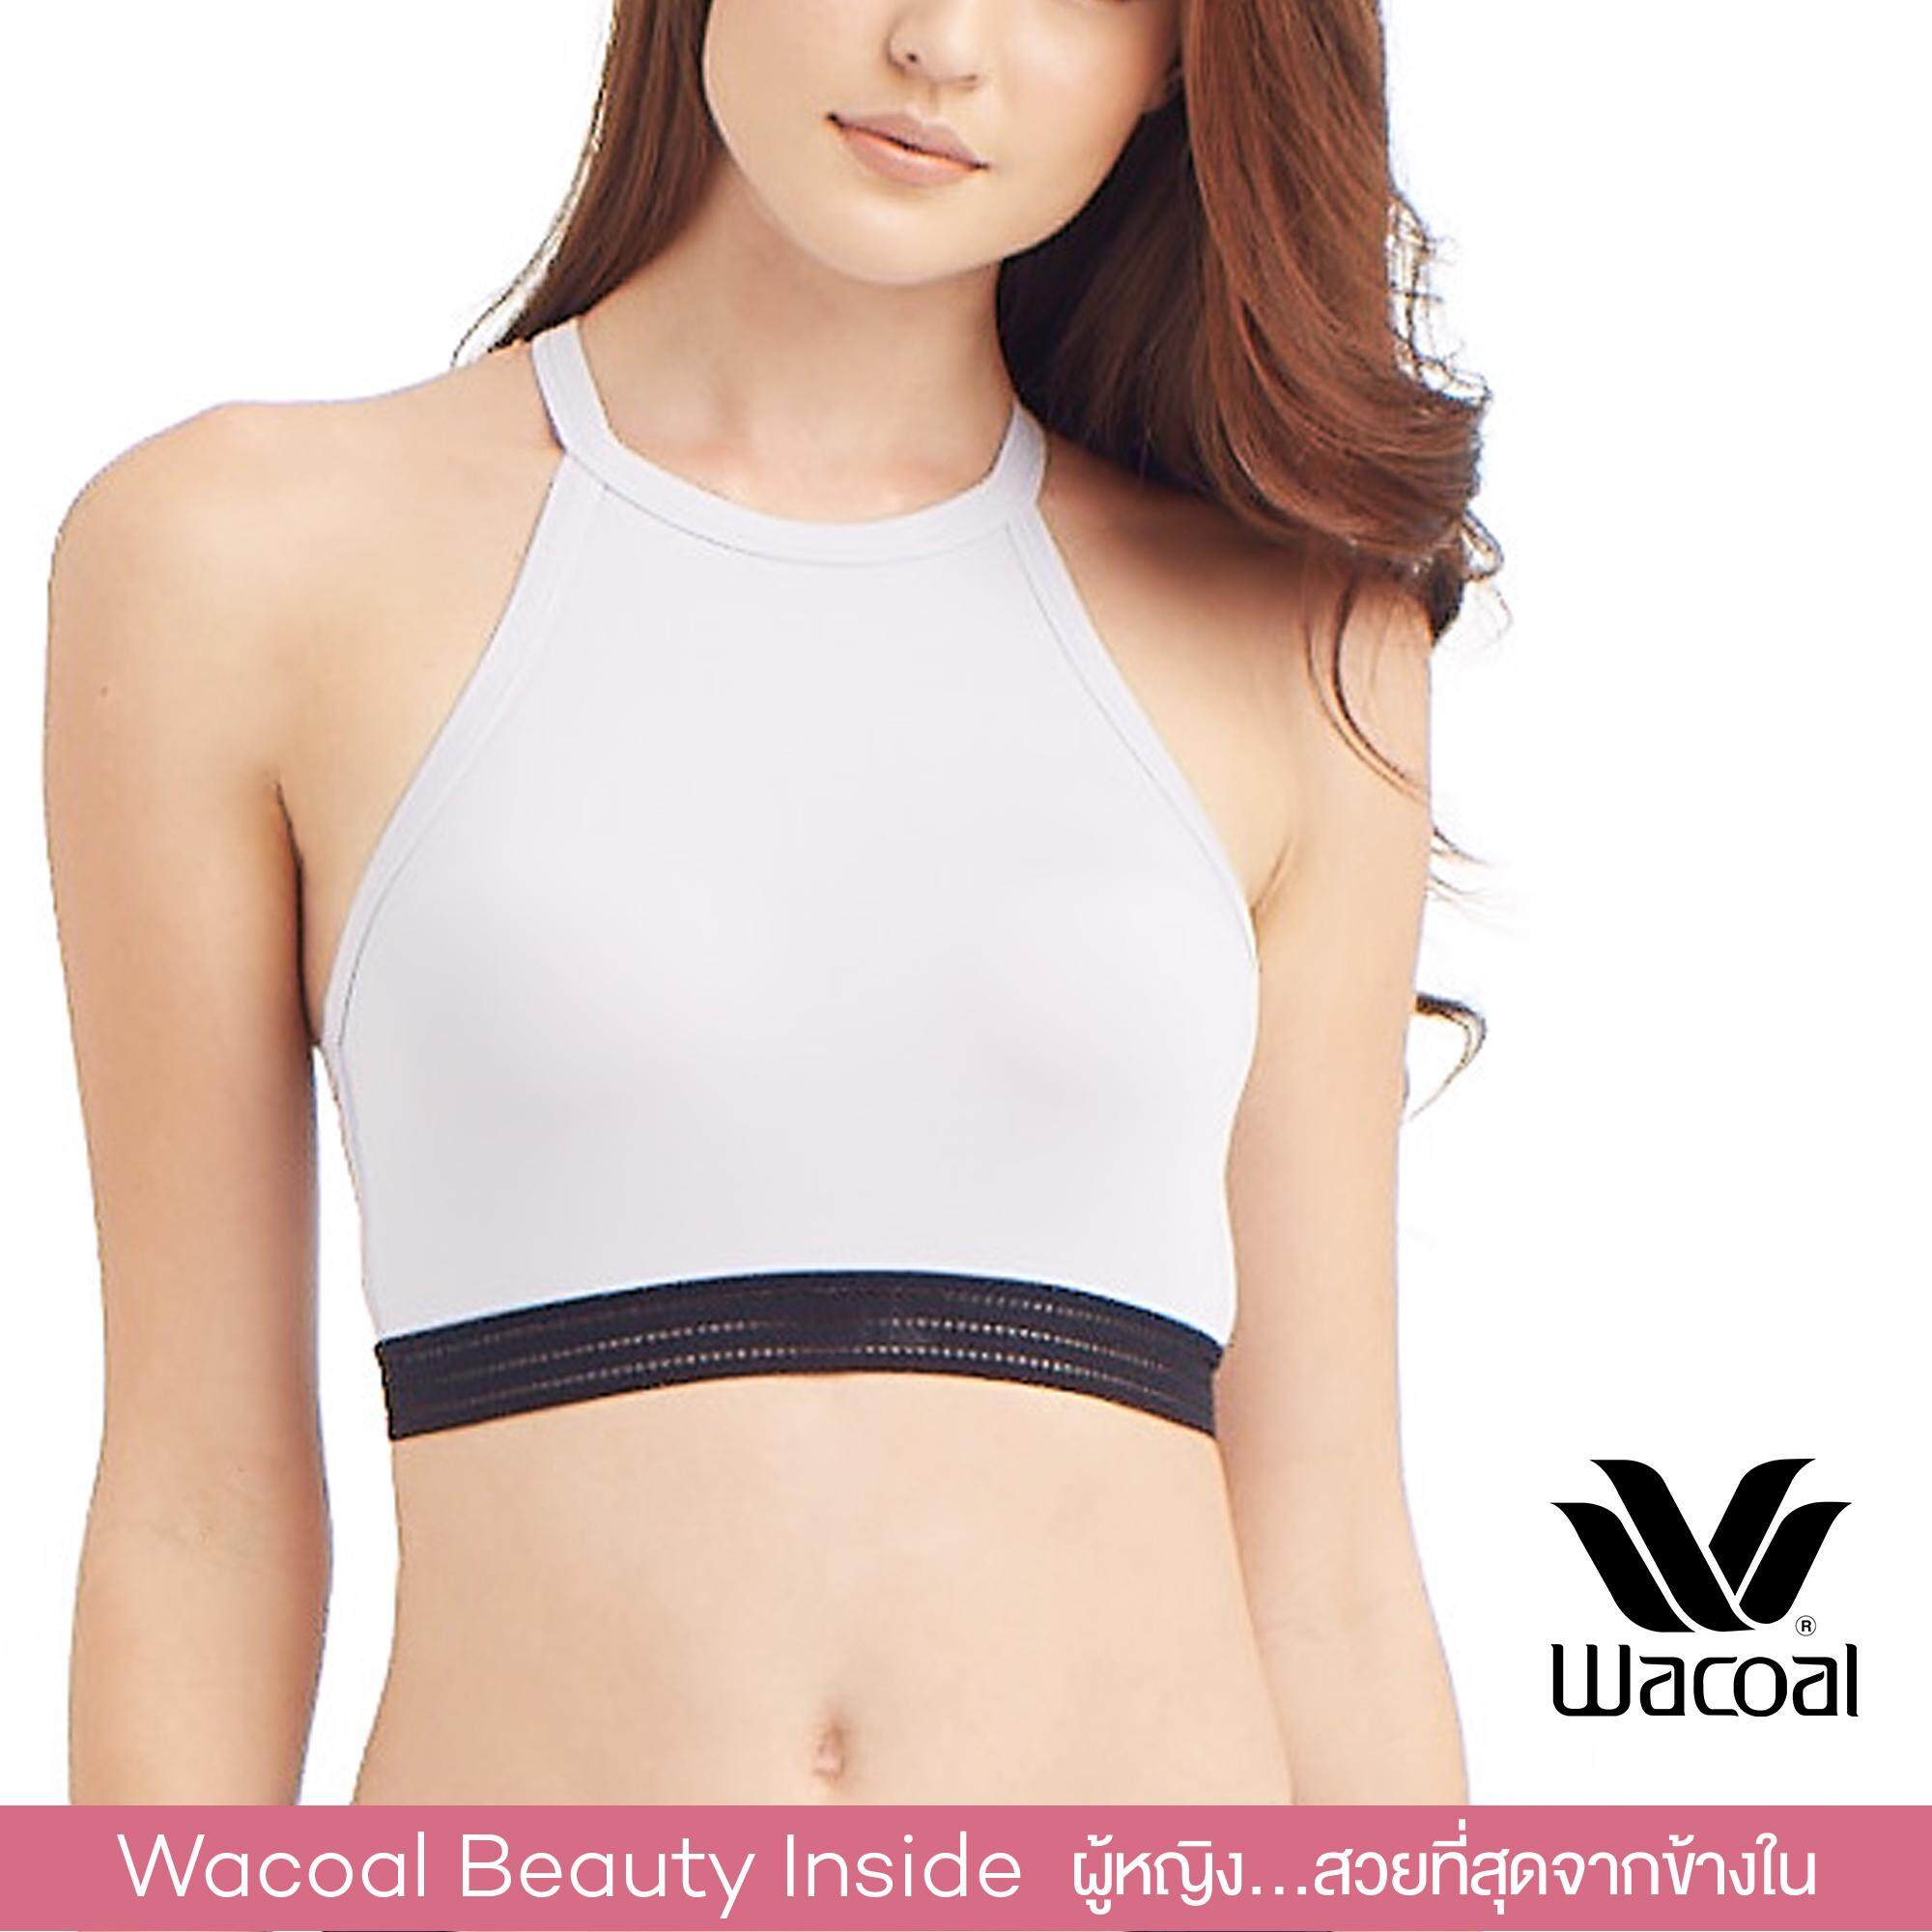 Wacoal Lingerie Casual bra (Wireless suport) บราสวมหัว - WH9D23